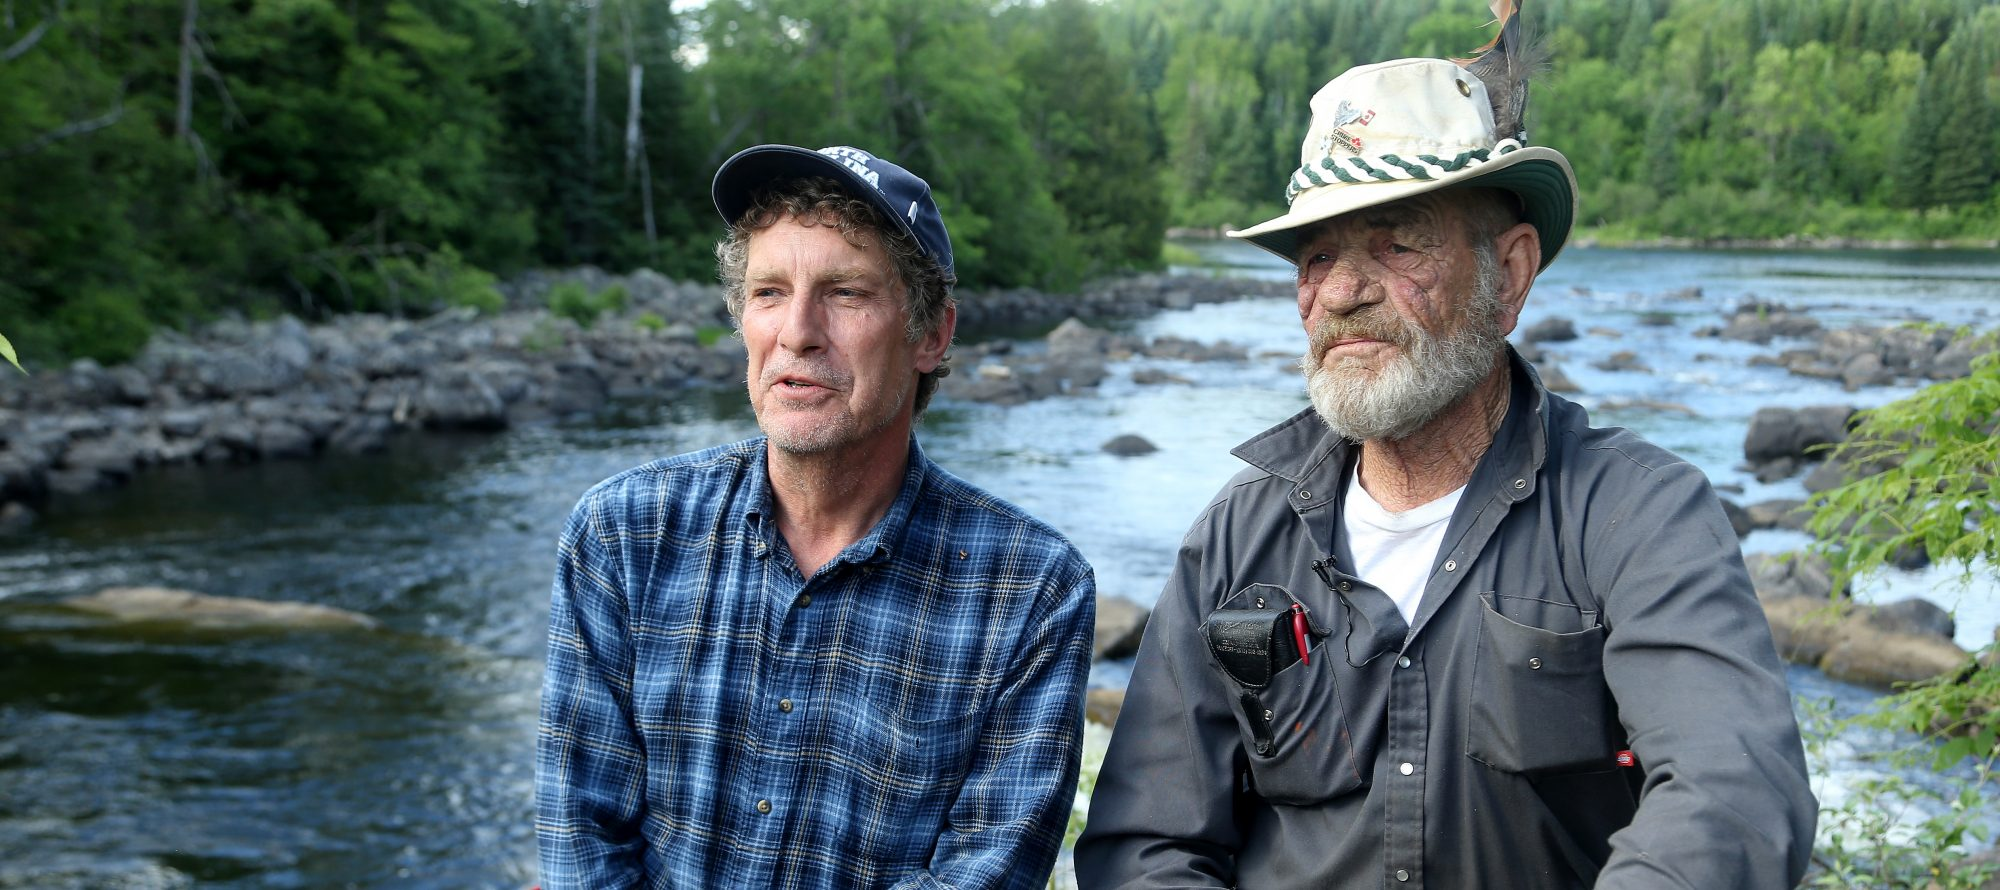 Ron Corbett Talks Hope and Fishing with Algonquin Park Guide Frank Kuiack